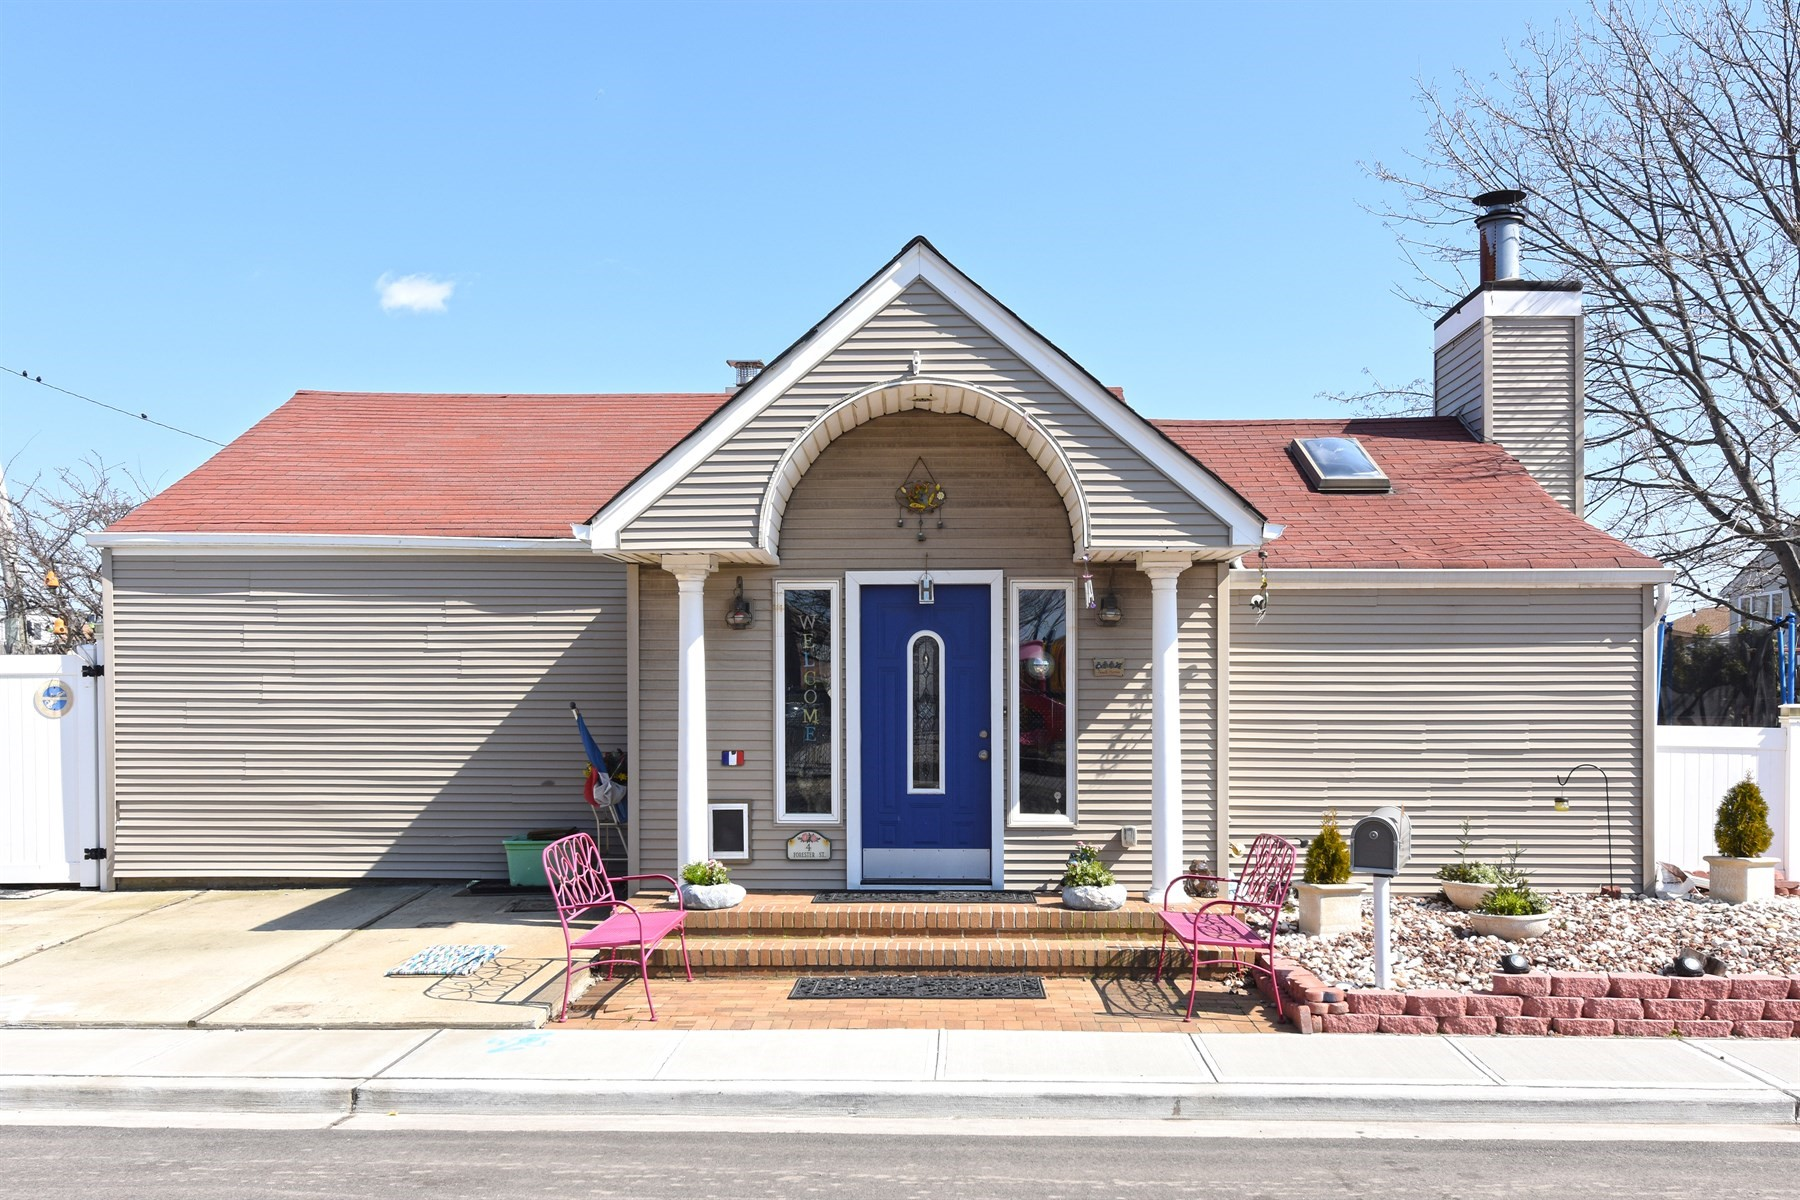 Single Family Home for Sale at 4 Forester St , Long Beach, NY 11561 4 Forester St Long Beach, New York 11561 United States